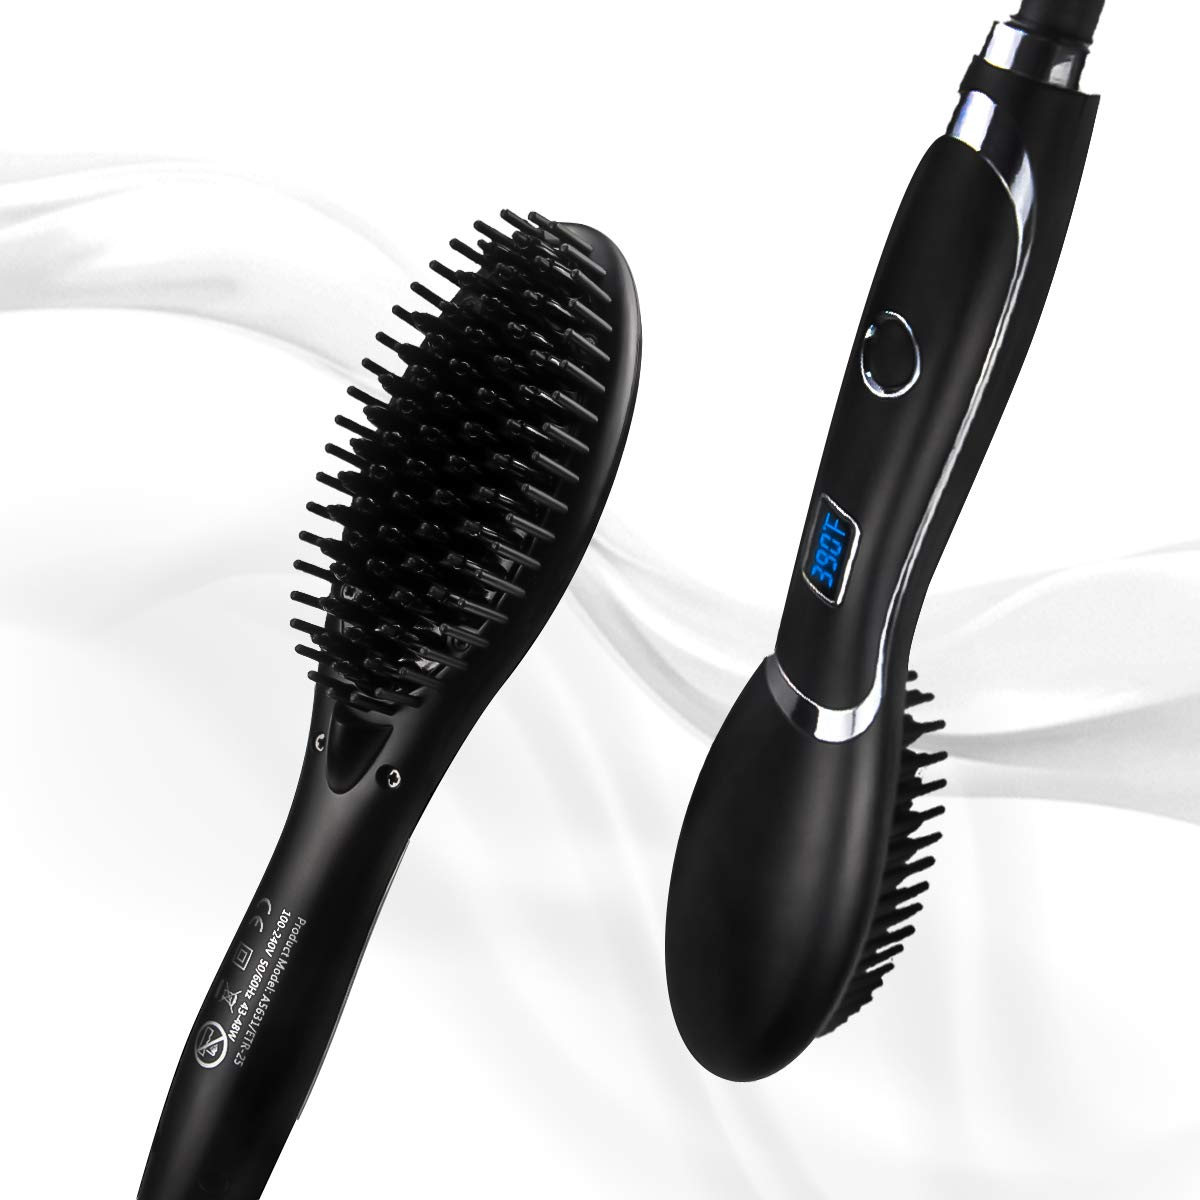 Hair Straightening Brush Corded Veru ETERNITY Hair Straightener Brush with LED Display and MCH